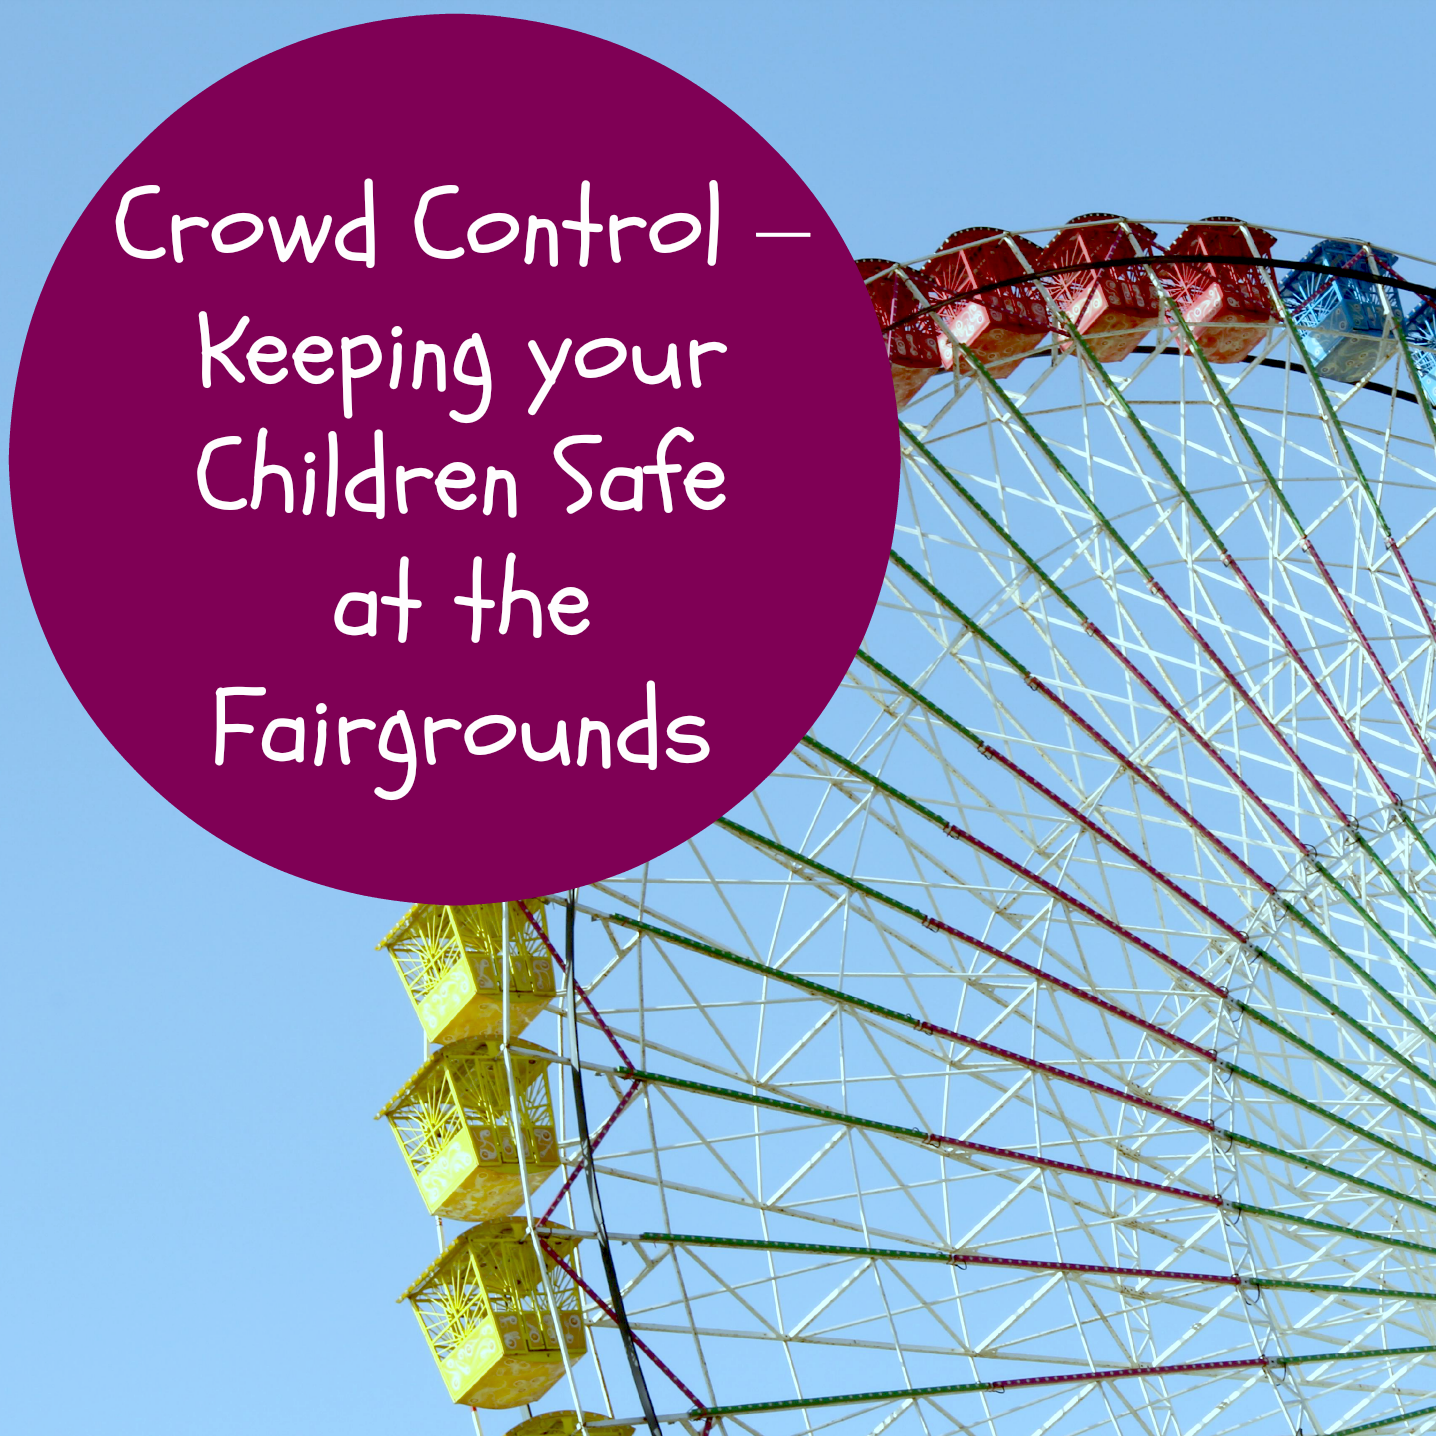 Crowd Control – Keeping your Children Safe at the Fairgrounds